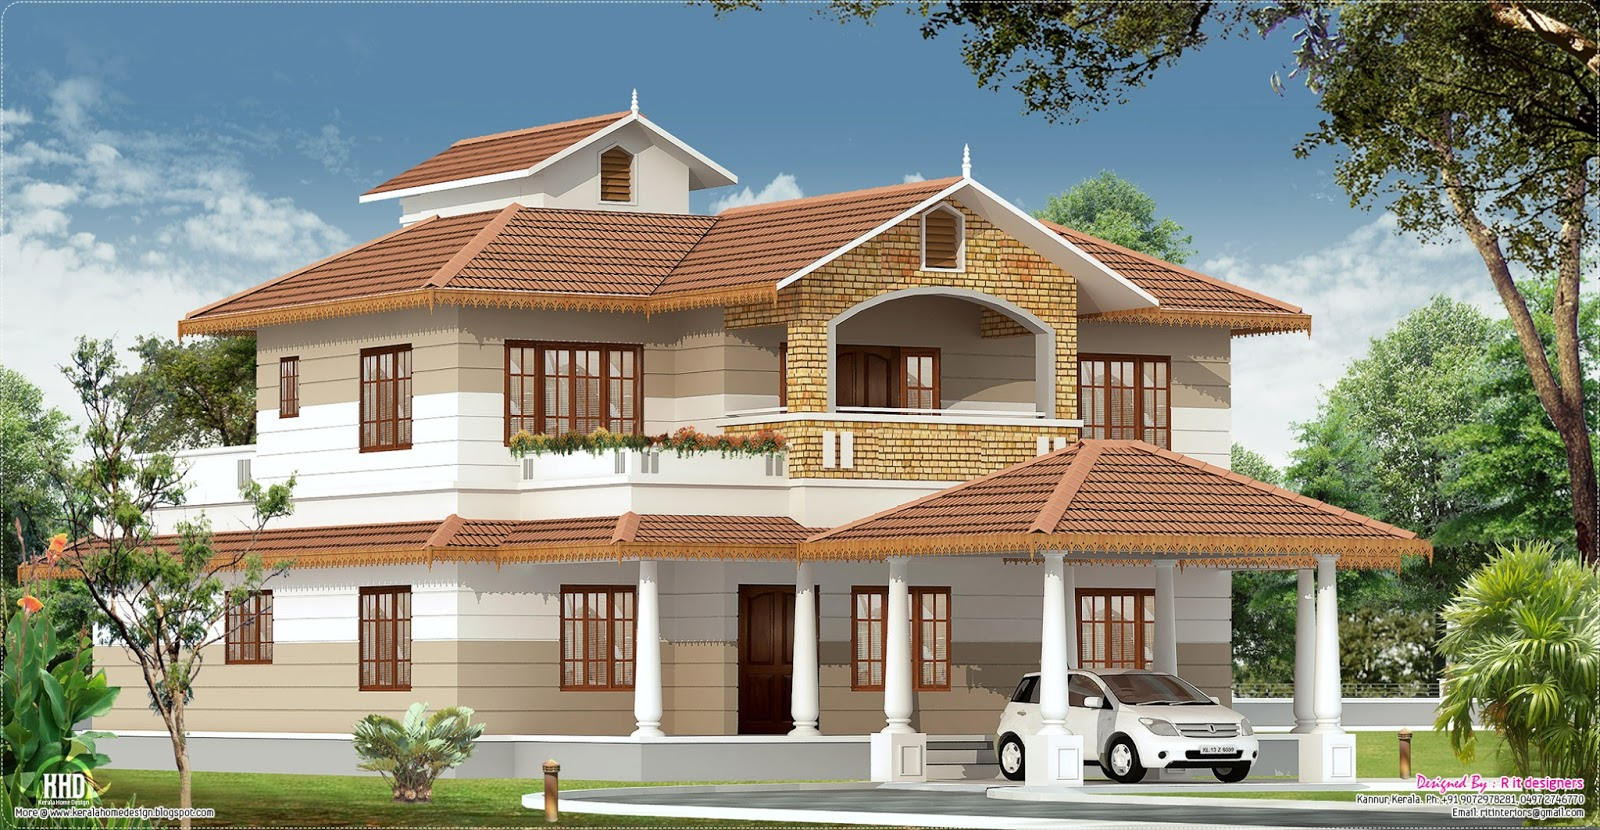 2700 kerala home with interior designs kerala for What is my home design style